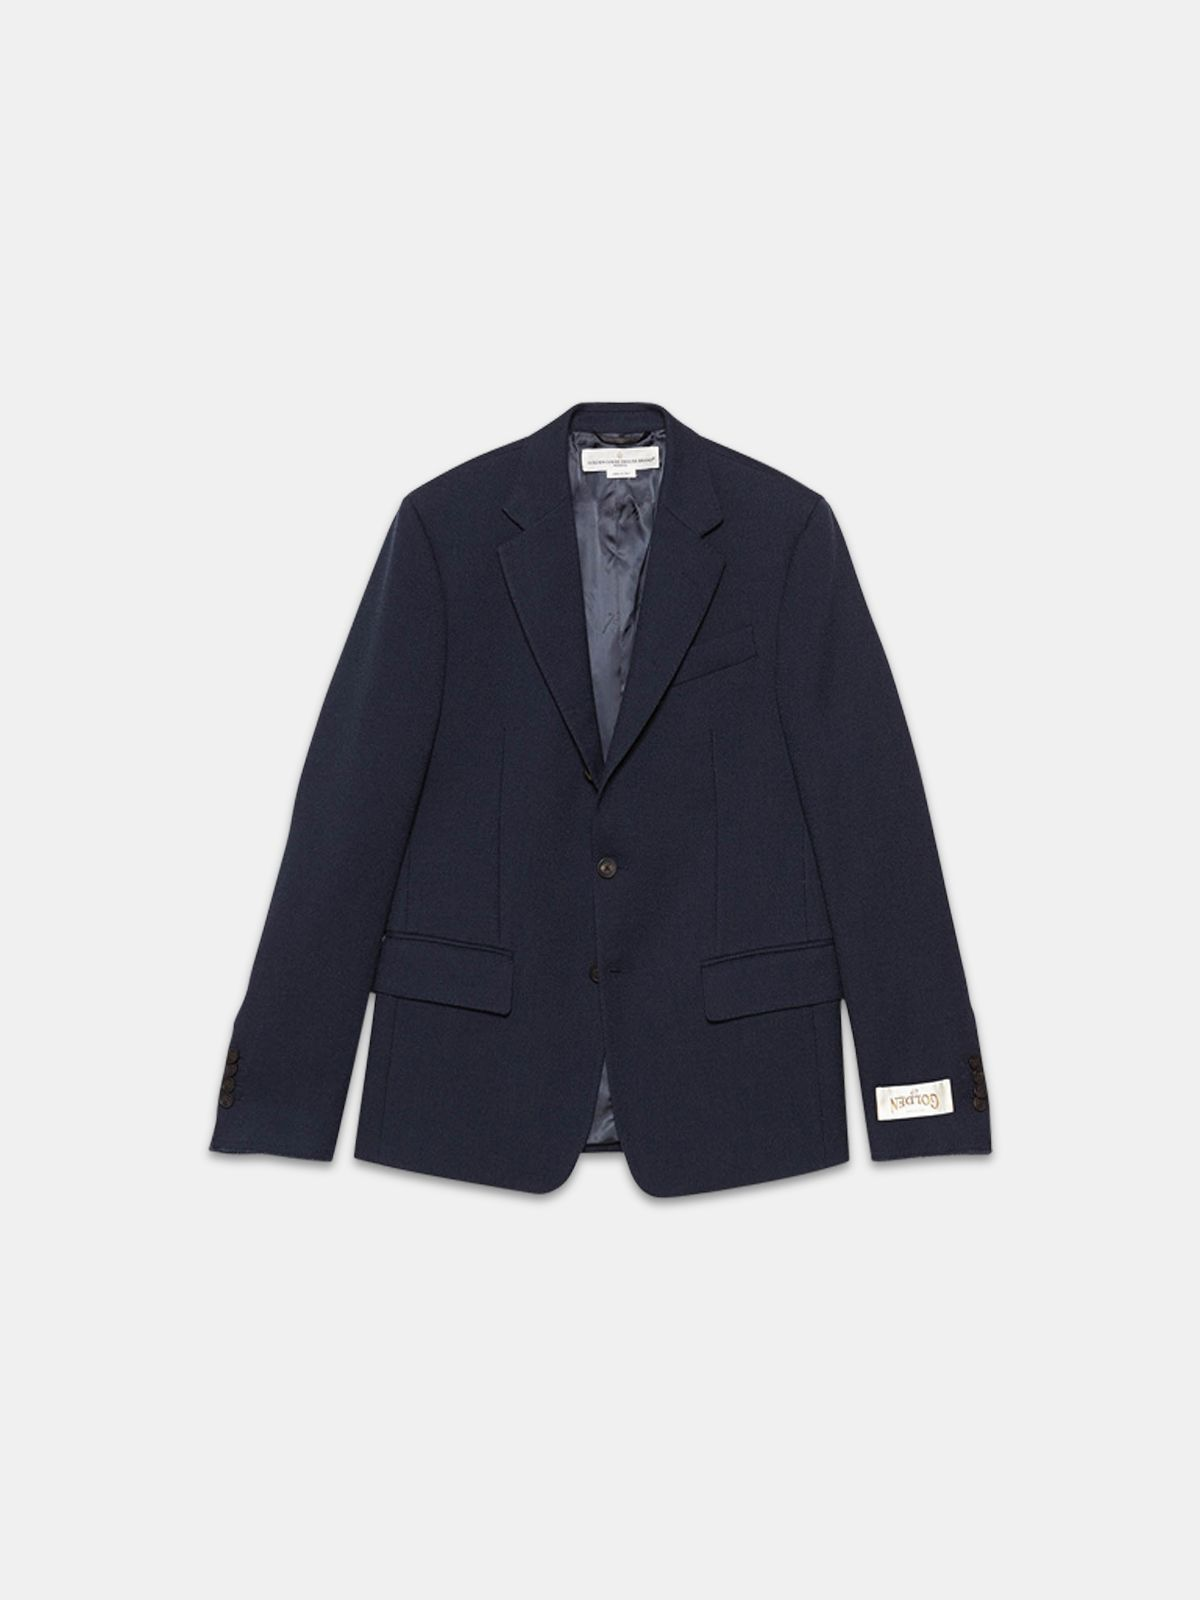 Golden Goose - Venice single-breasted jacket in wool crêpe in